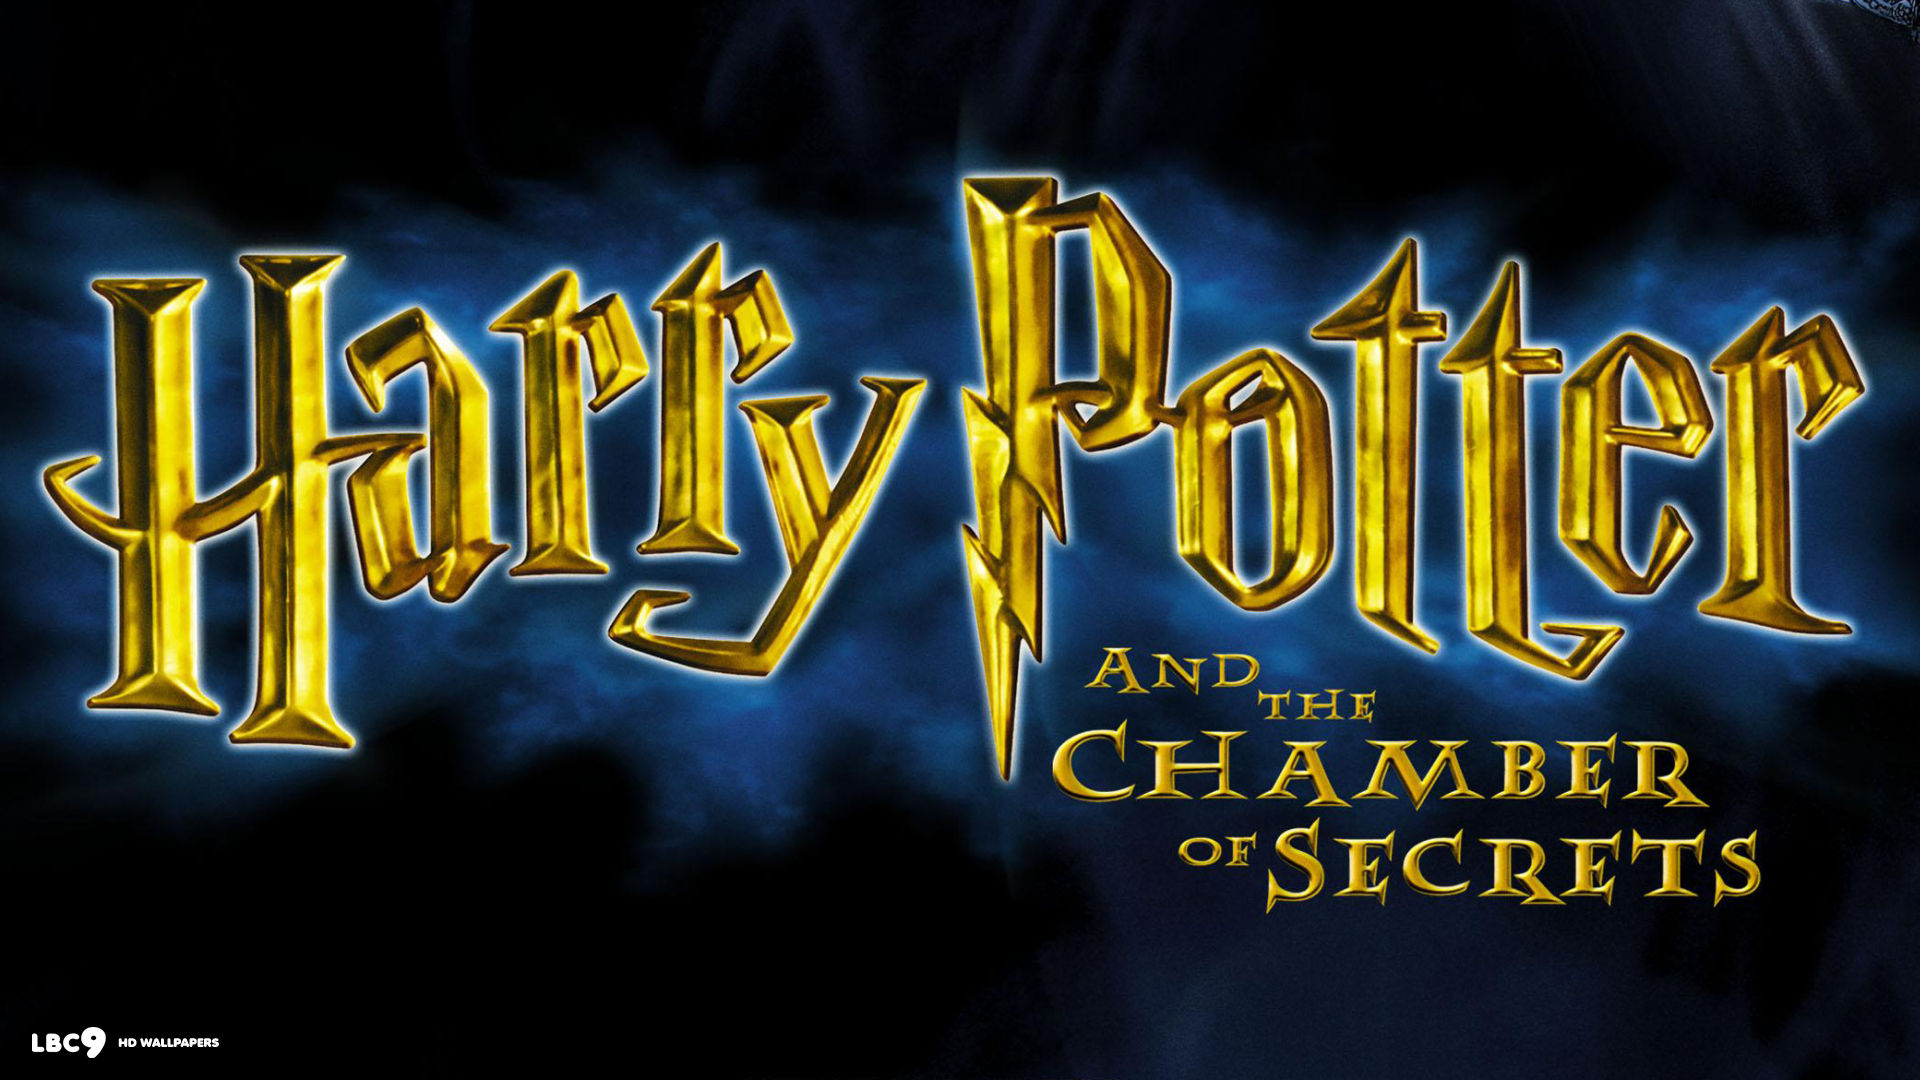 Harry Potter and the Chamber of Secrets Wallpapers 1920x1080